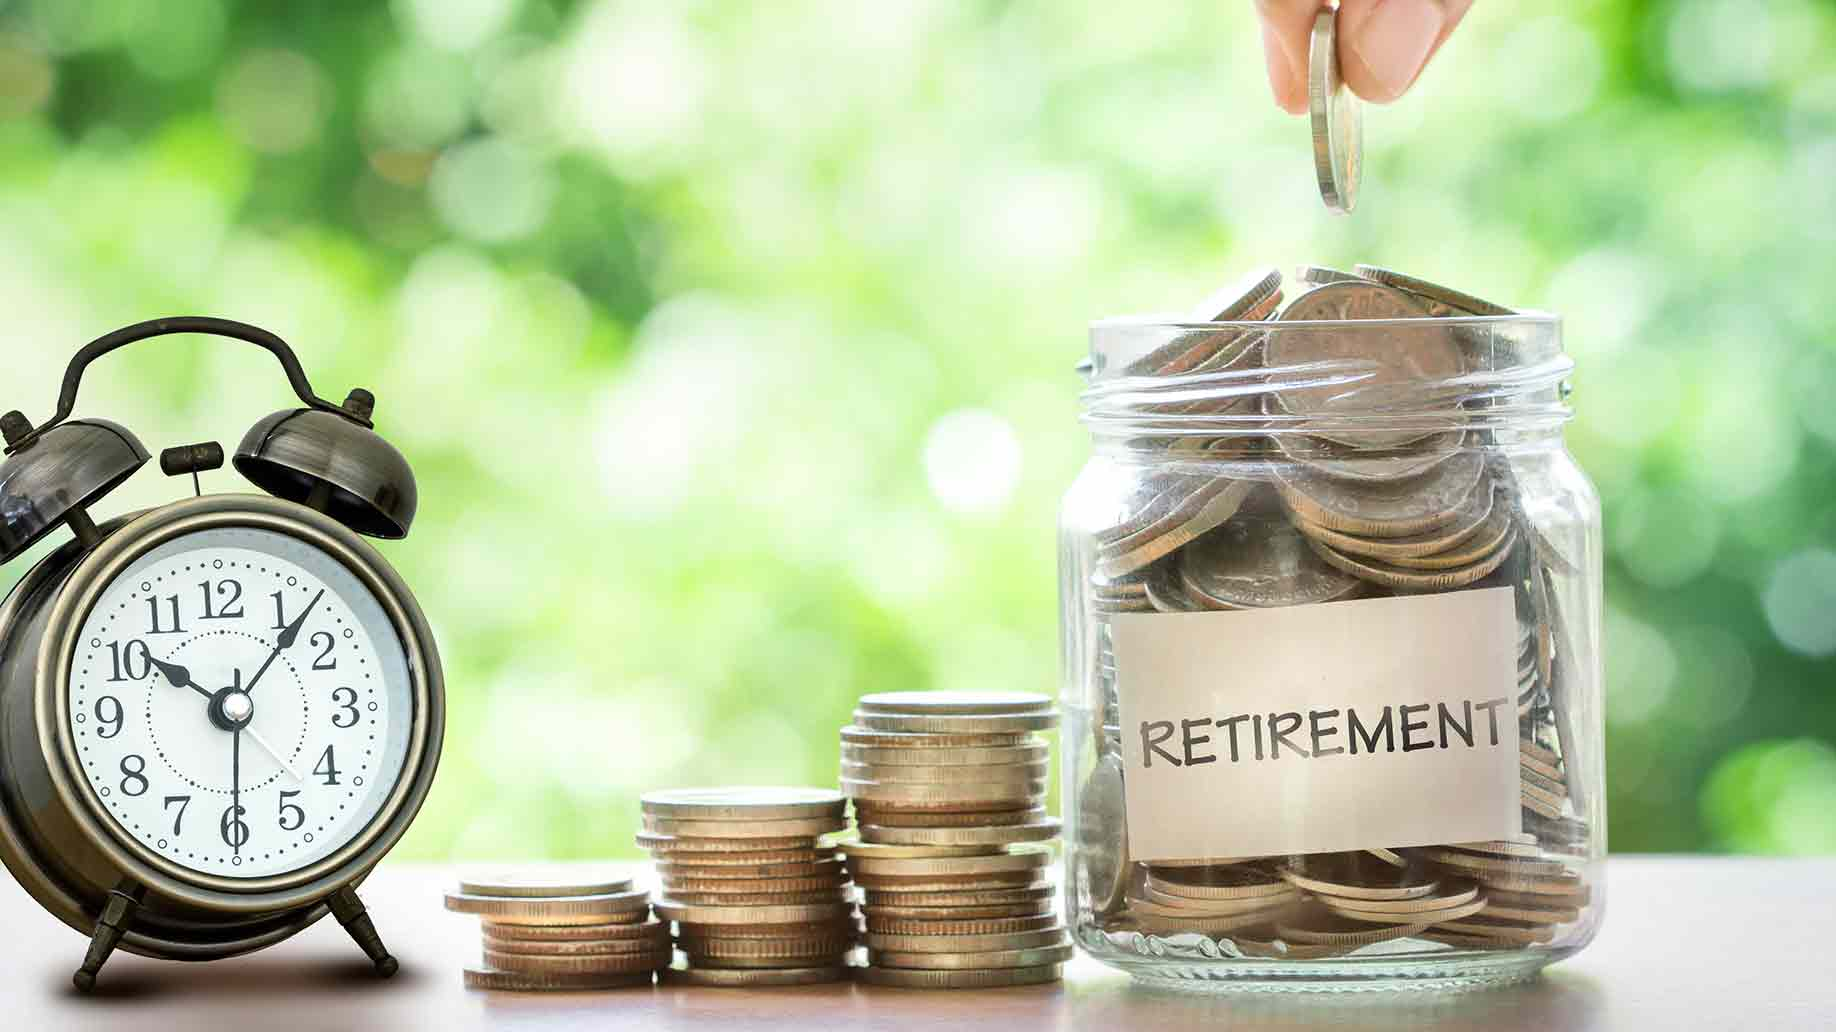 coins in glass jar to save money for retirement with clock